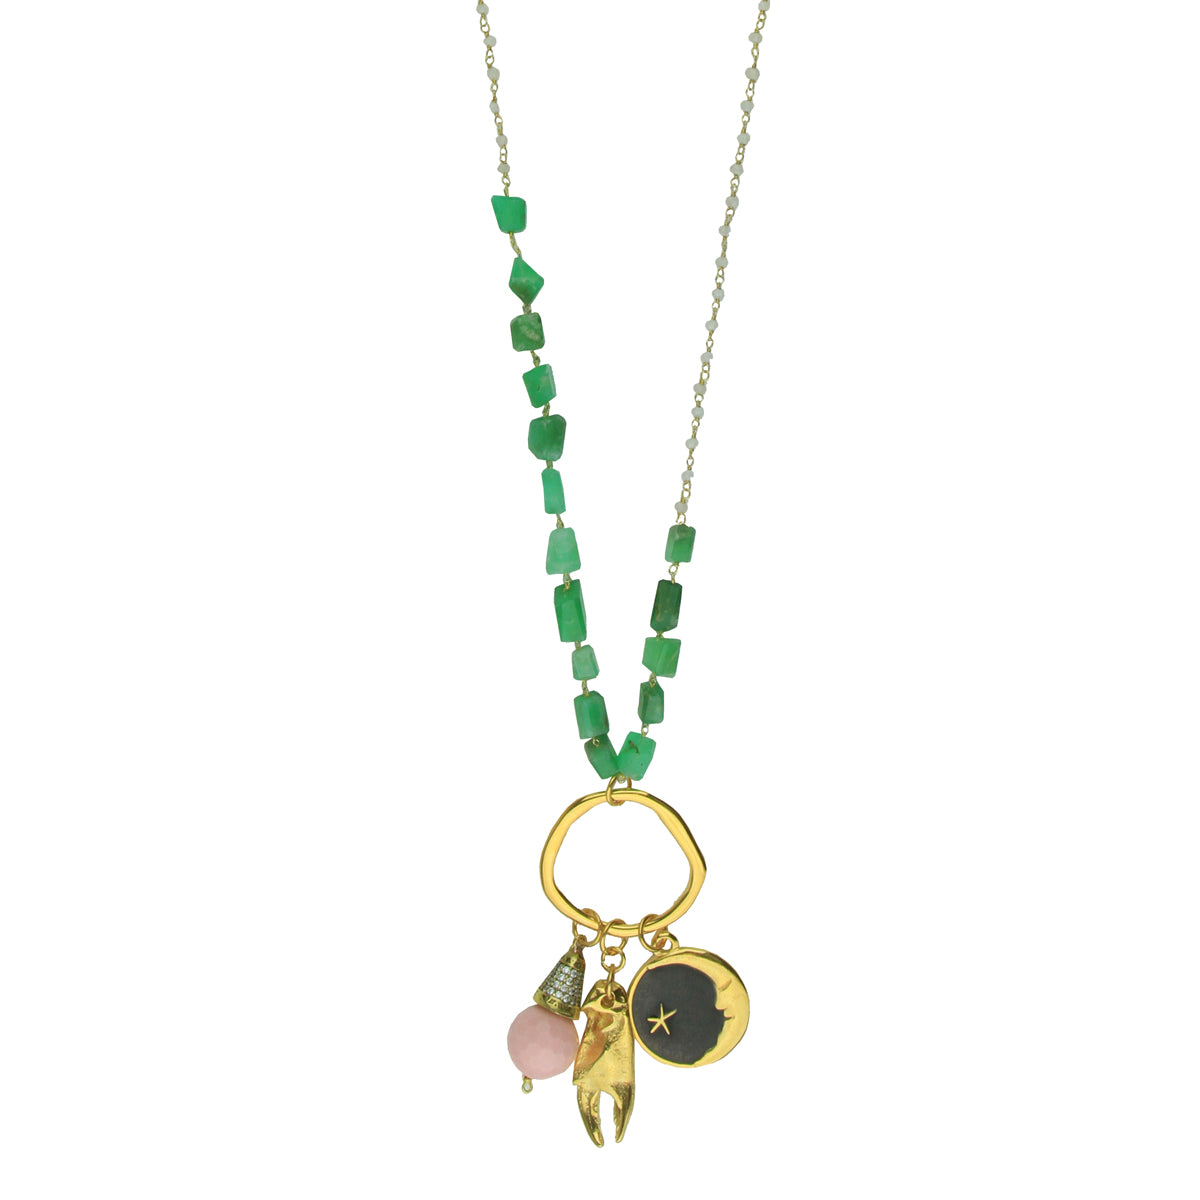 Aurora Chrysoprase Long Necklace with Gold Plated Charms